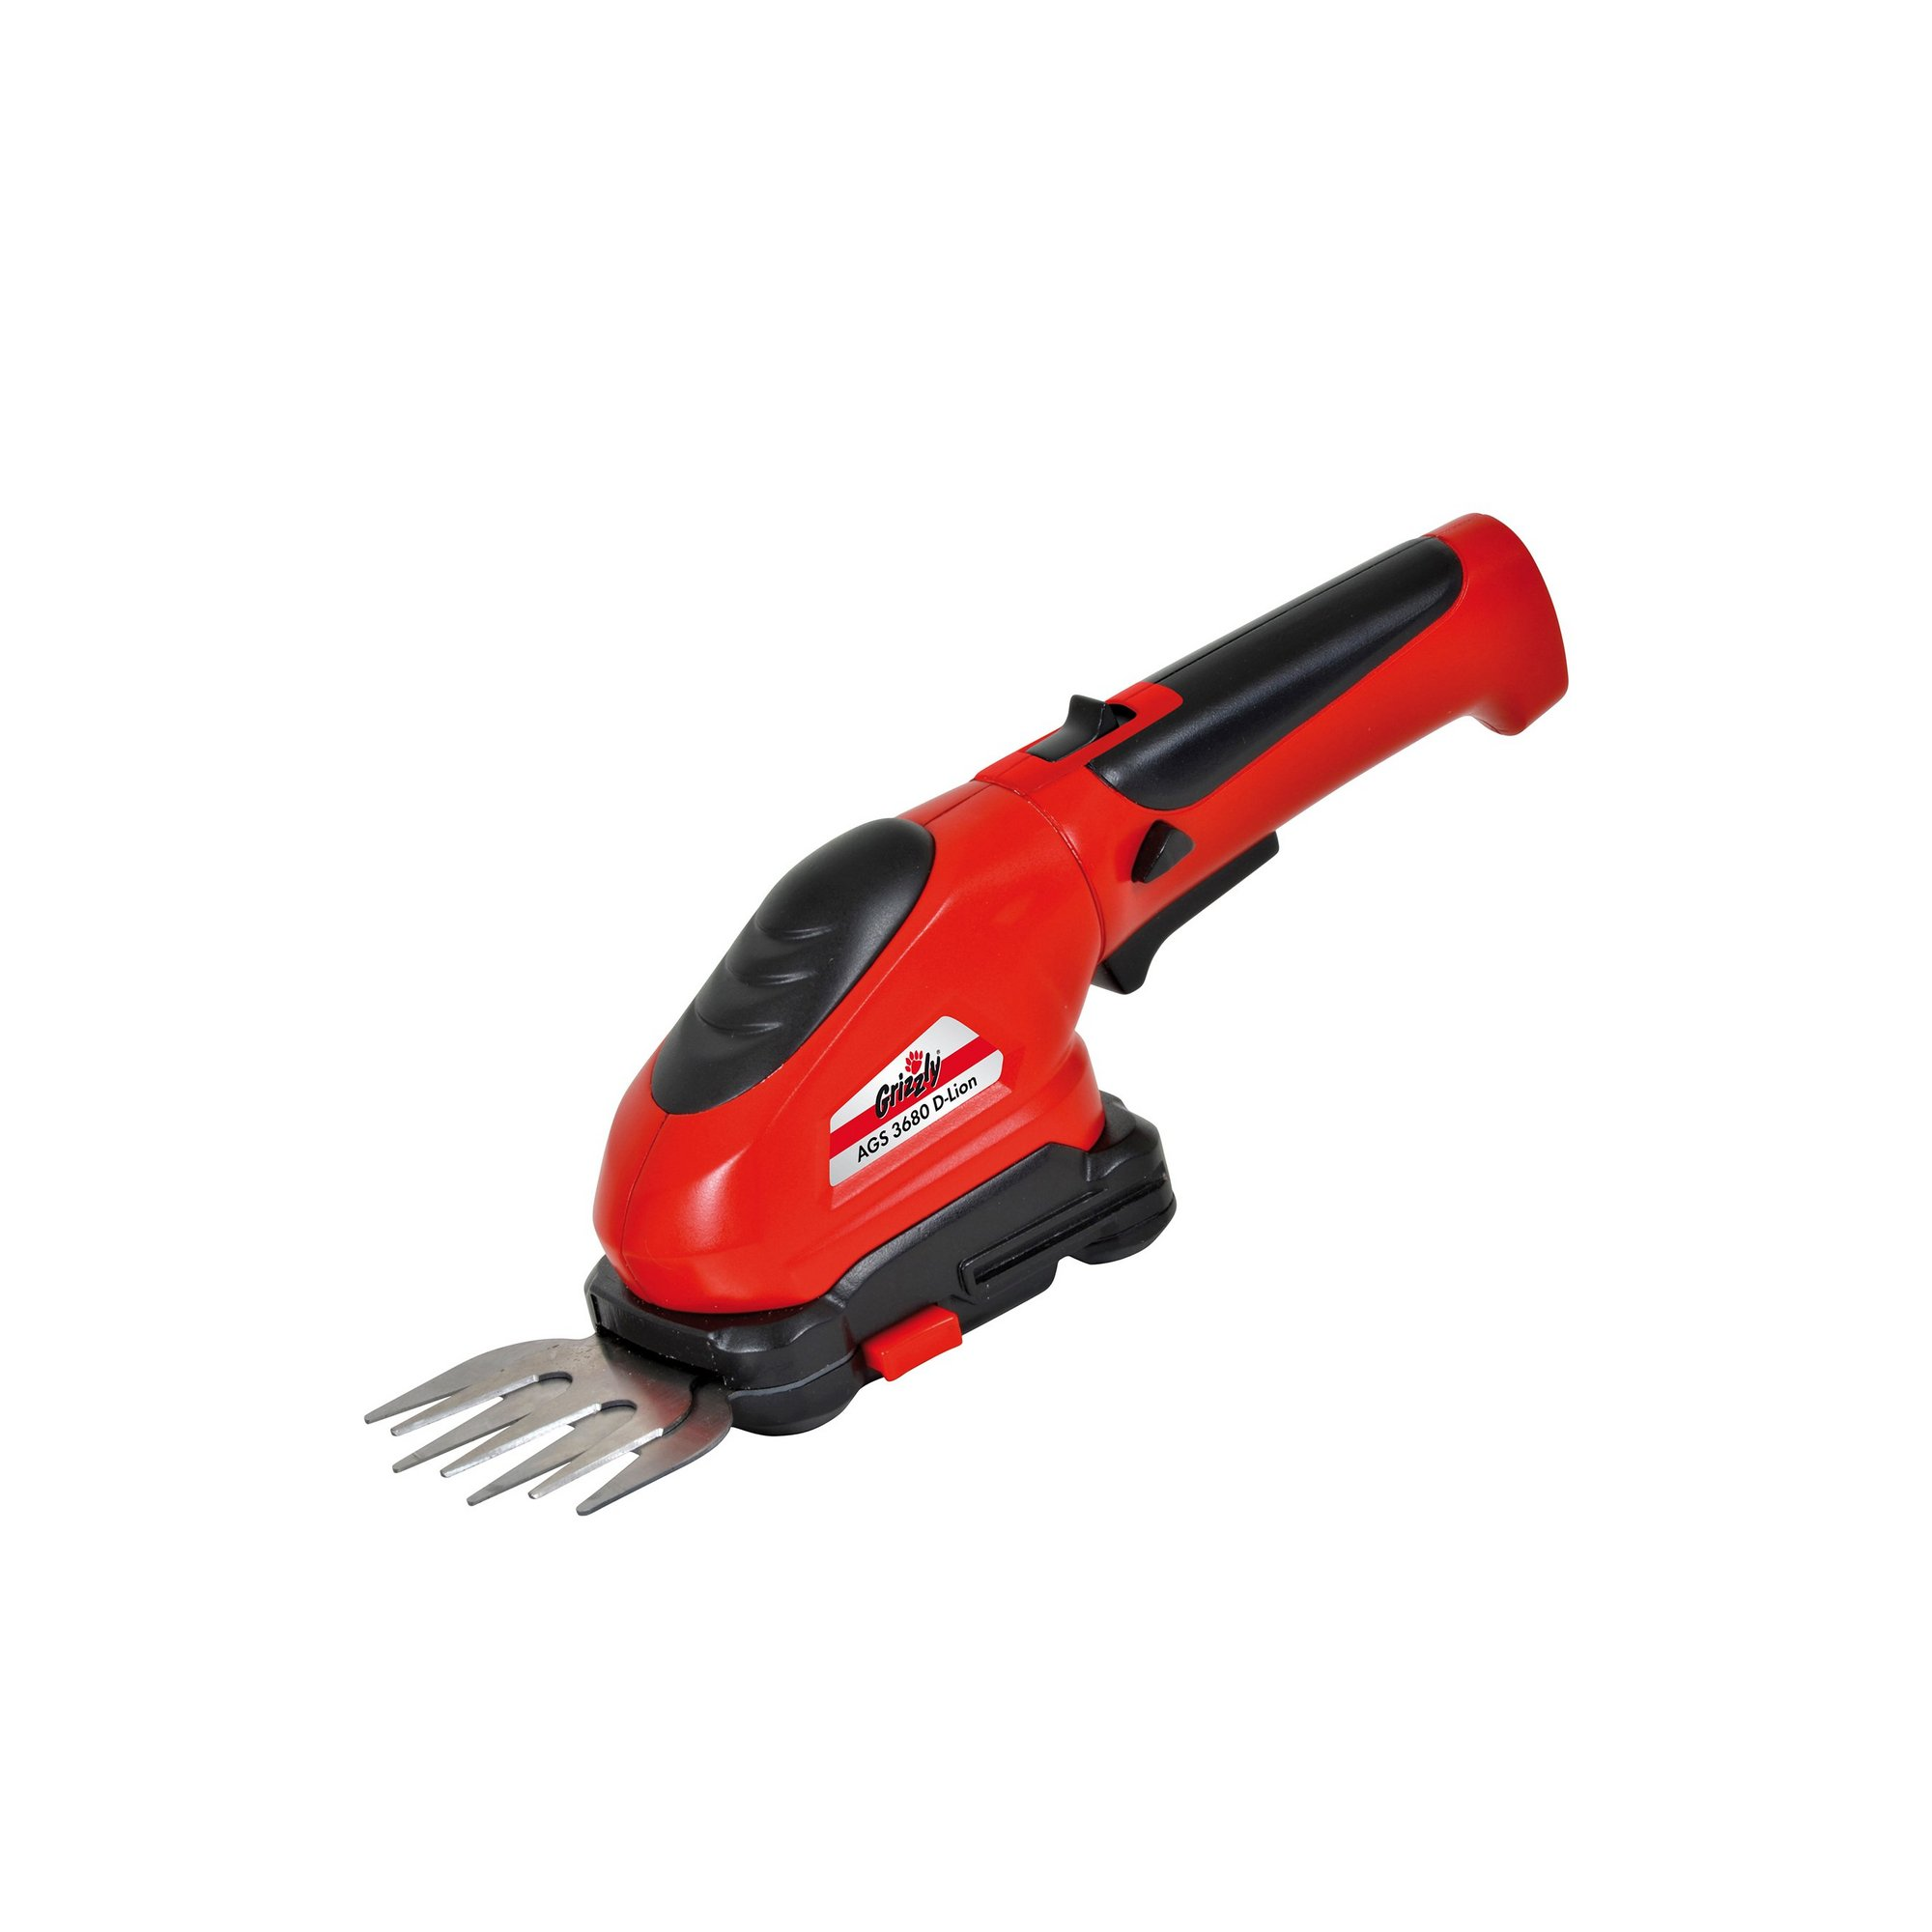 Image of Grizzly AGS Battery Powered Grass Shears